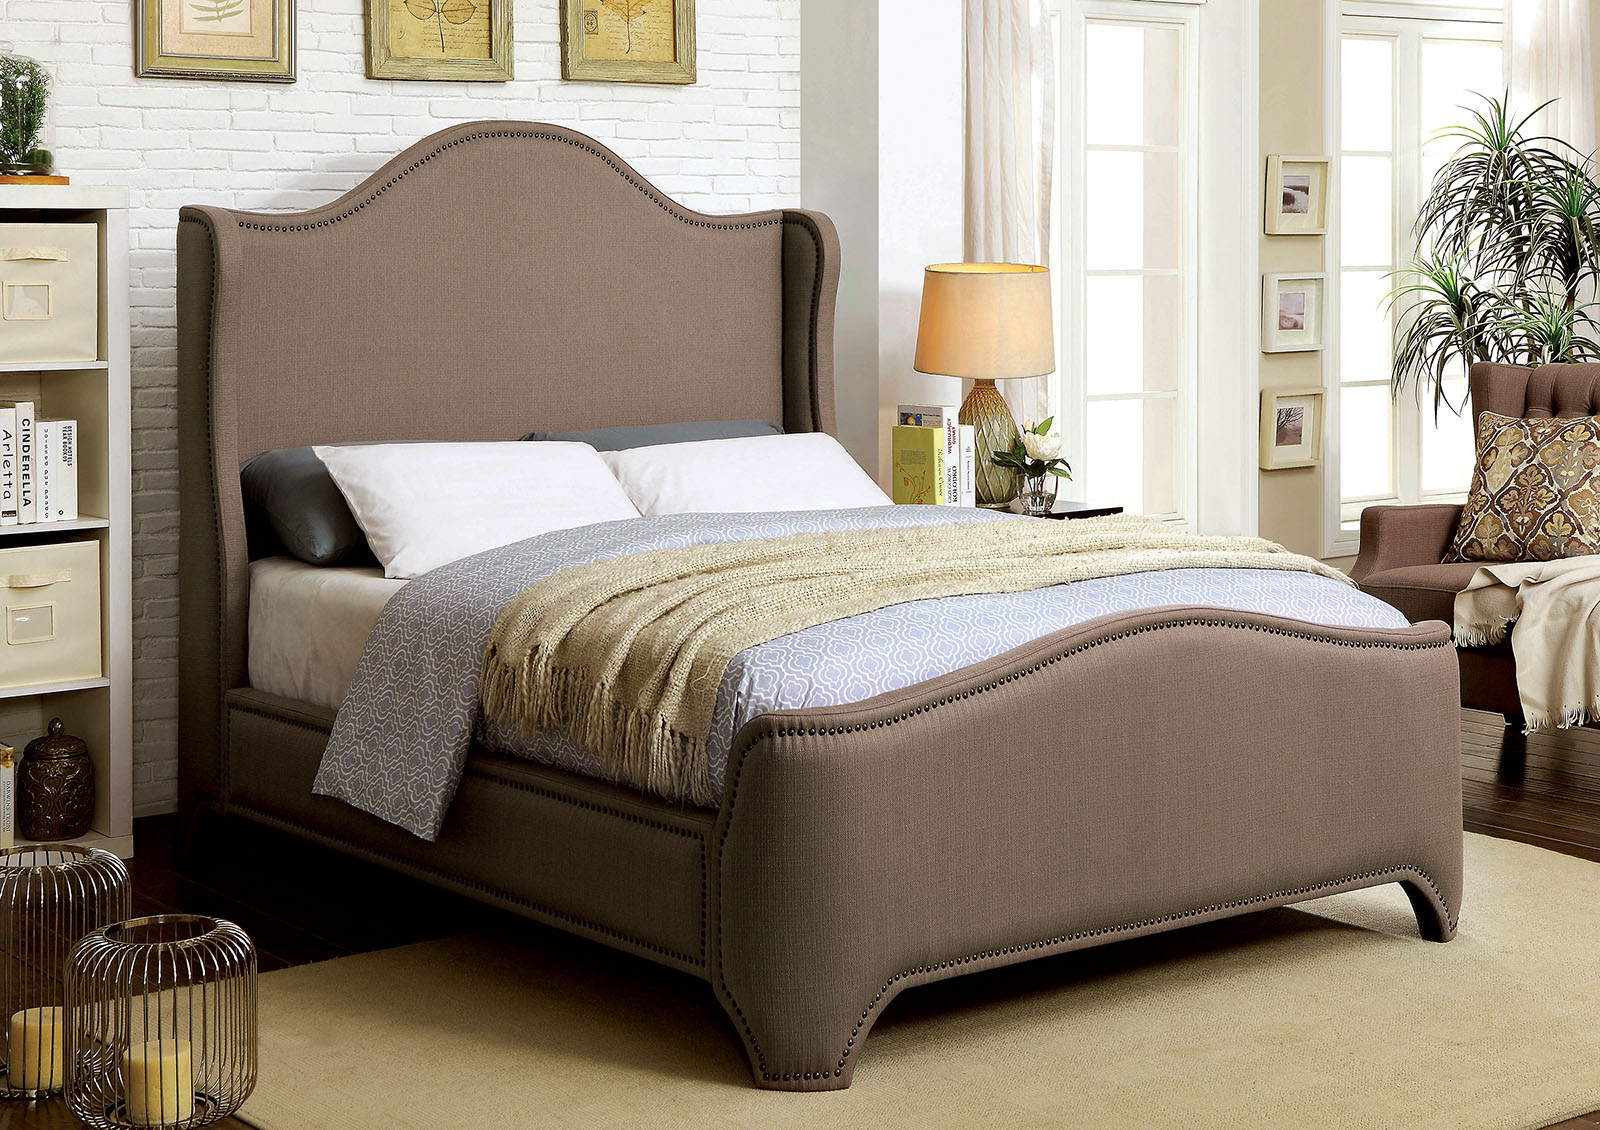 Bedroom Bed Contemporary Queen Size Bed Brown Padded Fabric Plush Comfort Relax Wingback Design